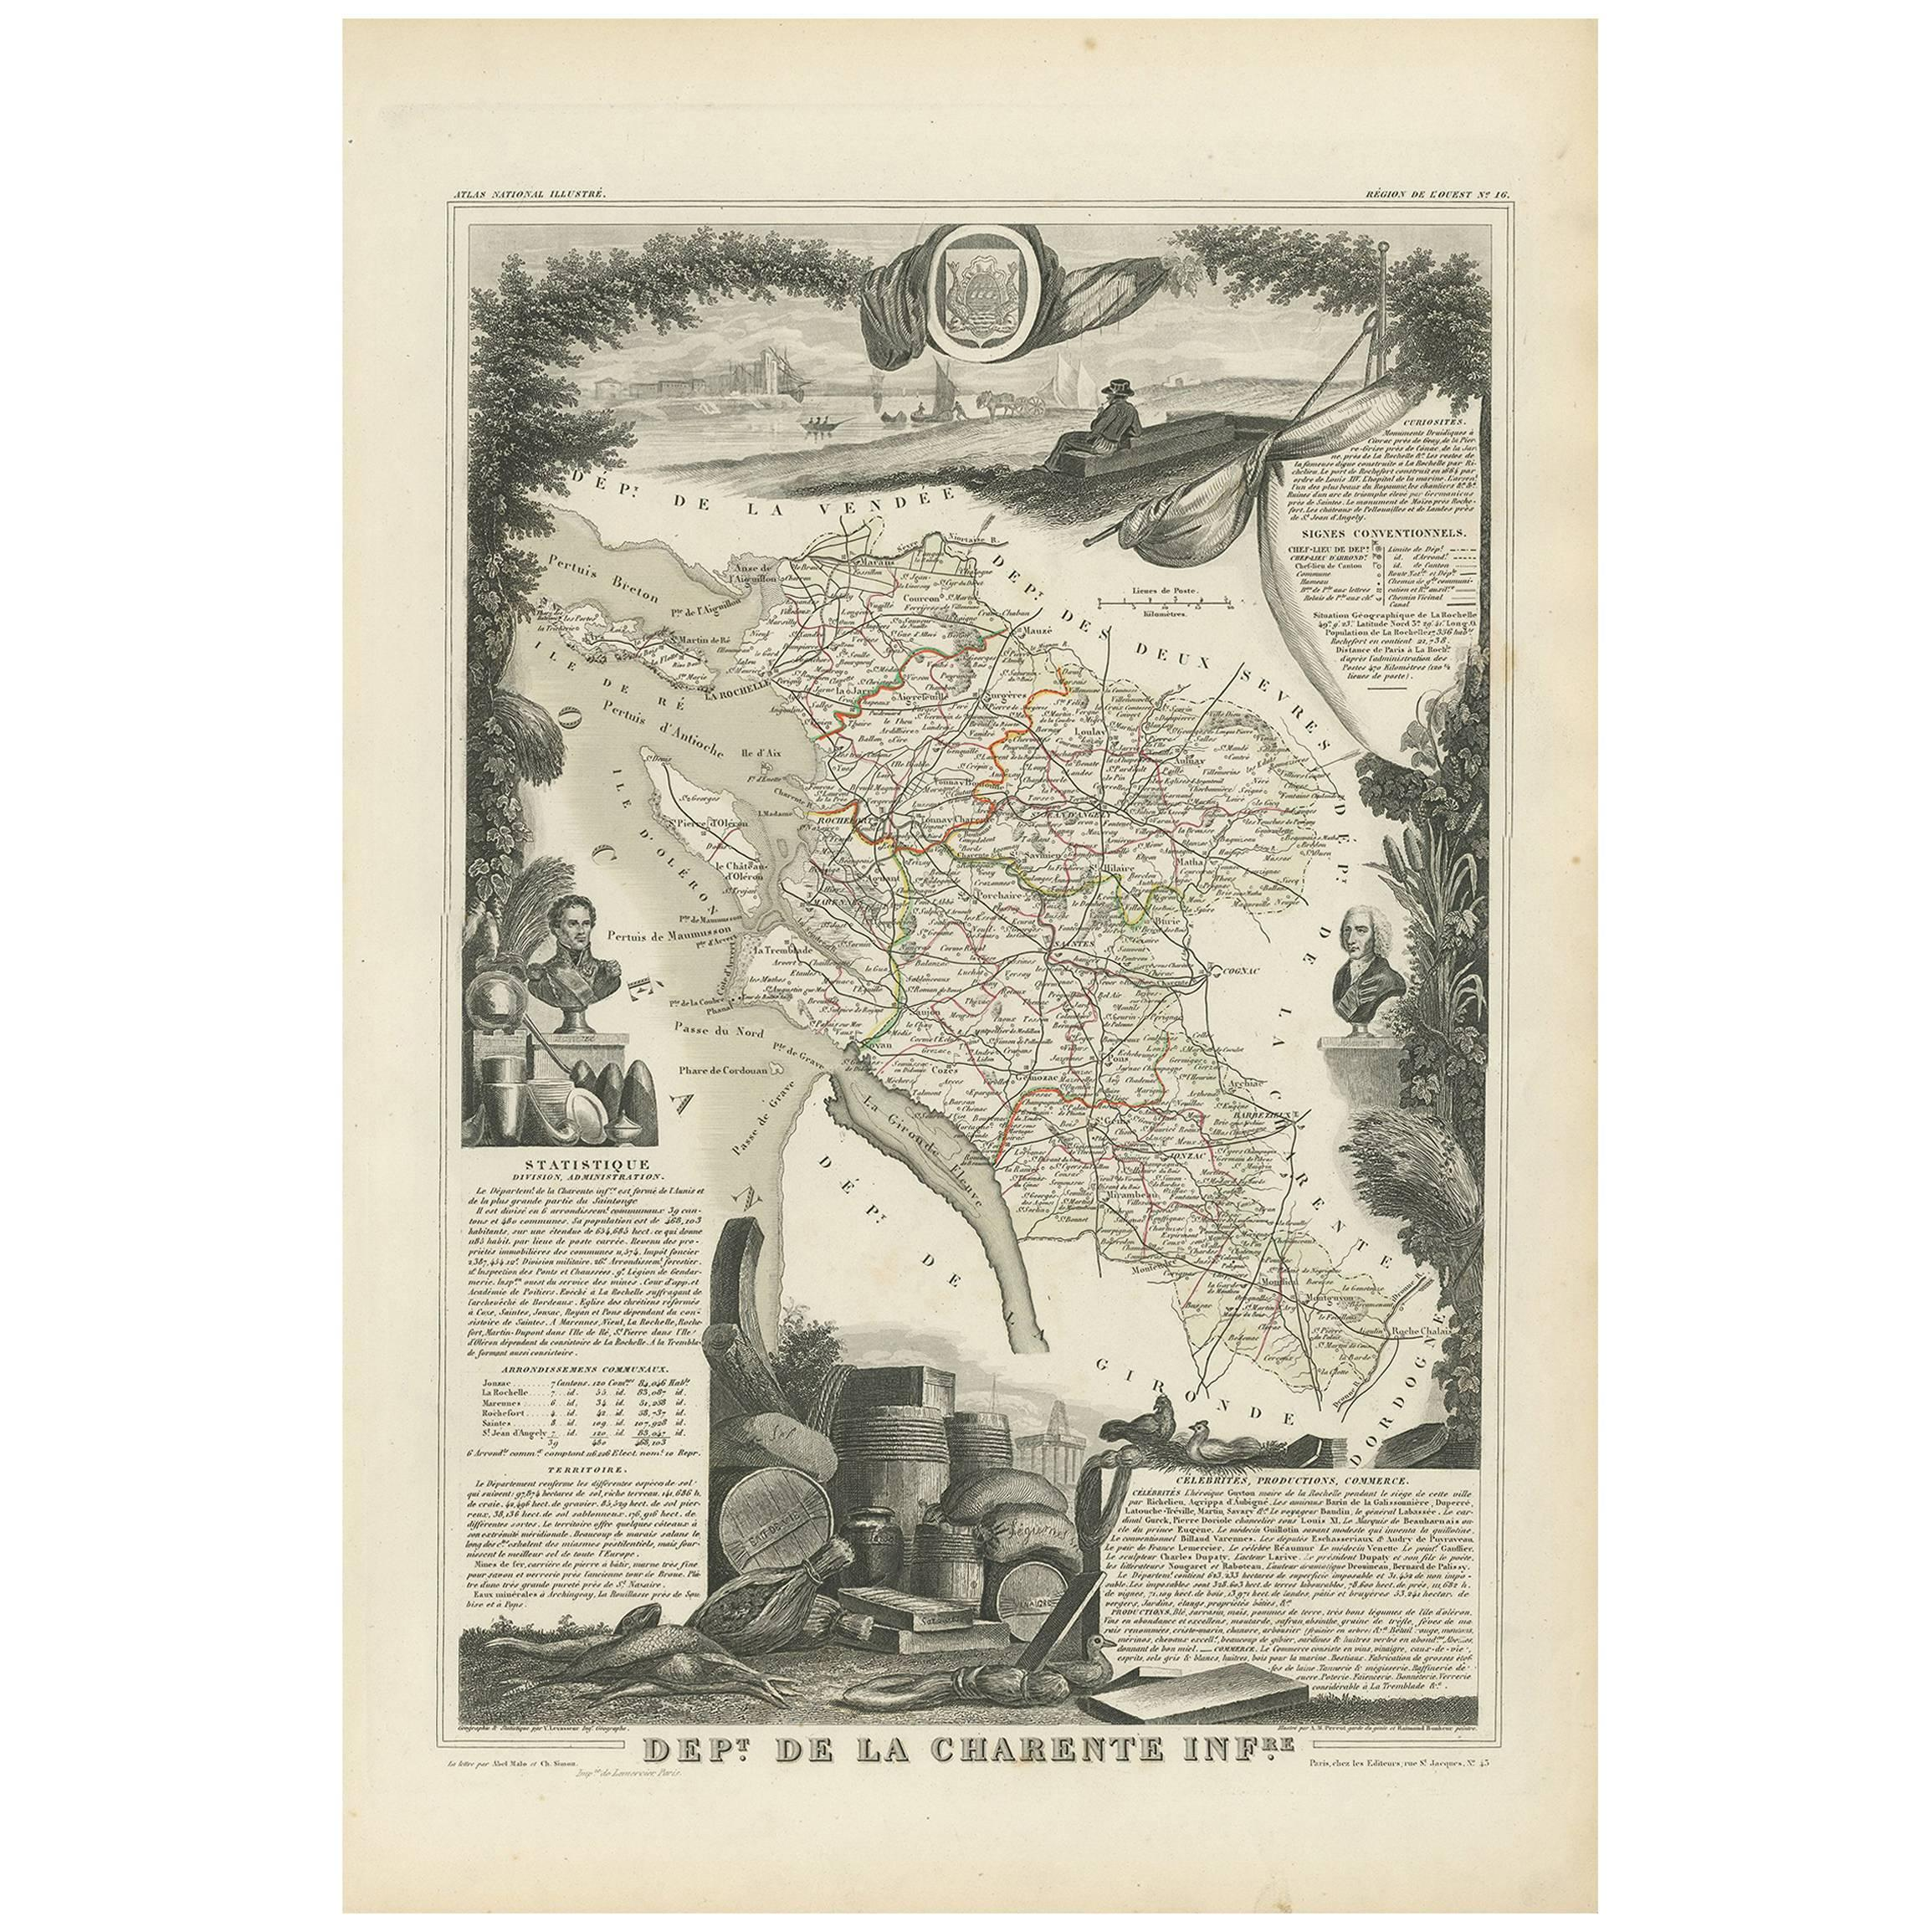 Antique Map of Charente Inférieure 'France' by V. Levasseur, 1854